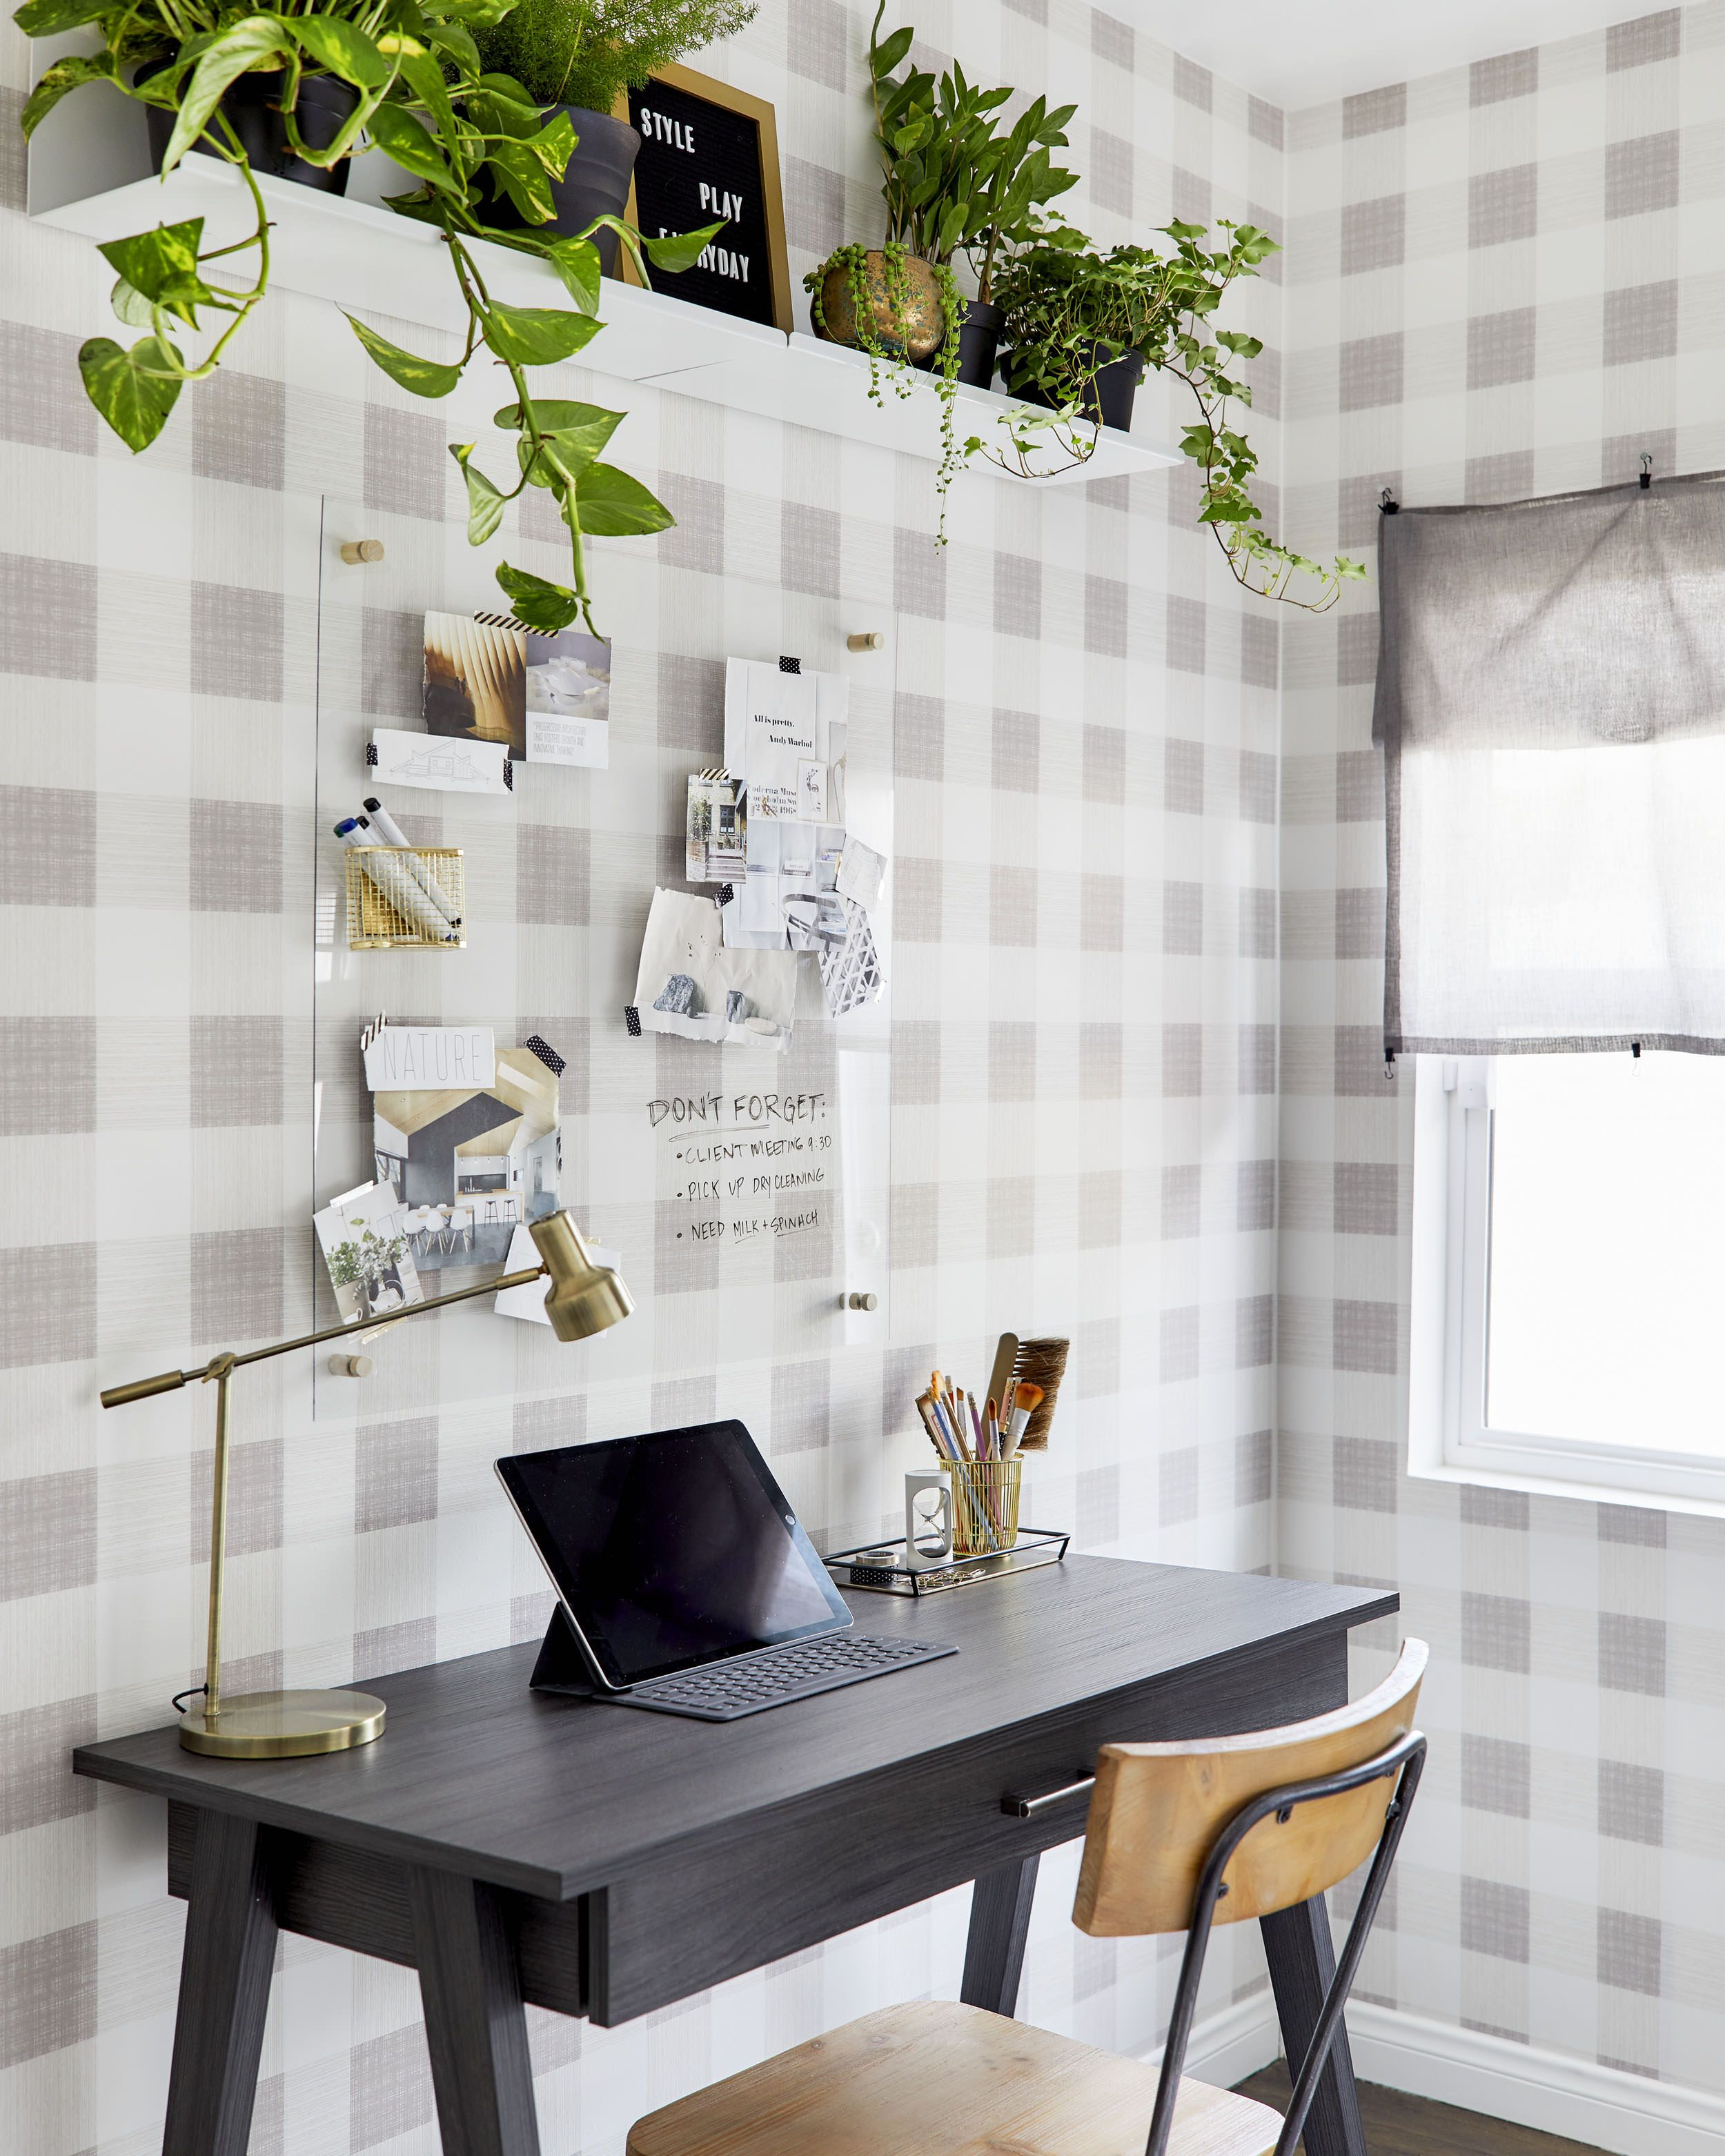 A Home Office Makeover With Threshold Removable Wallpaper By Target Home Office Design Office Makeover Office Wallpaper